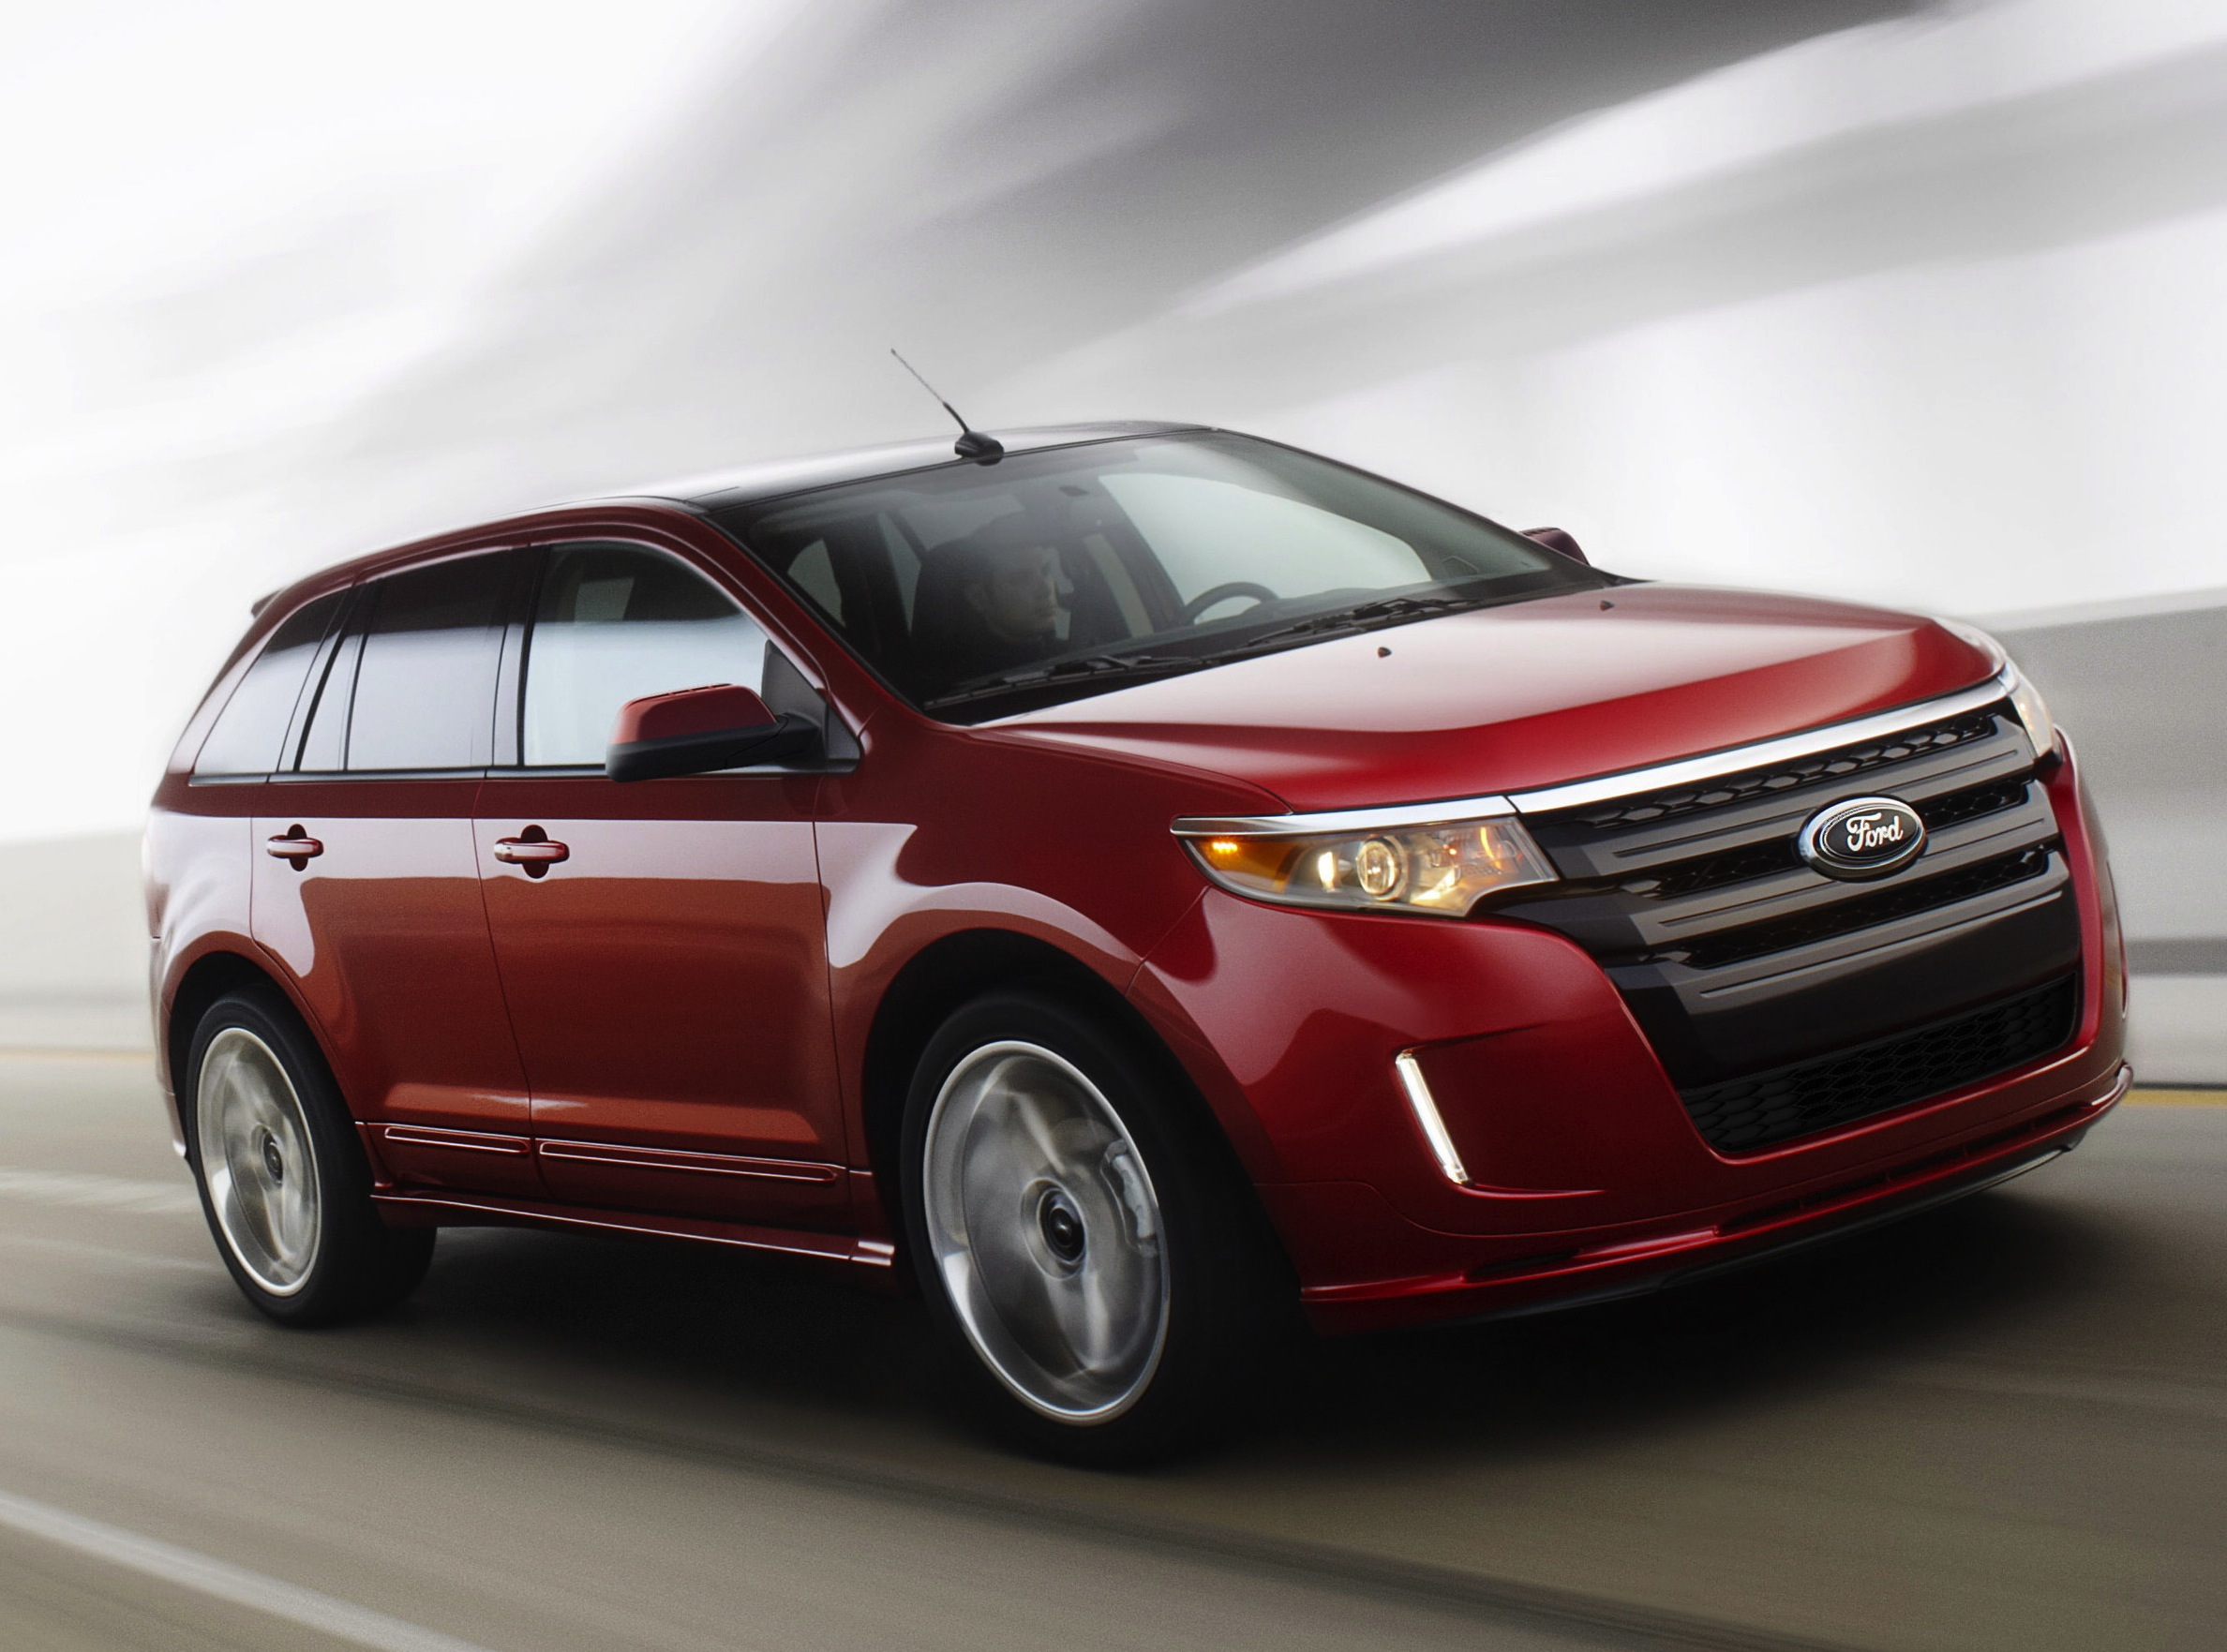 2013 chevrolet equinox vs 2013 ford edge the car autos weblog. Black Bedroom Furniture Sets. Home Design Ideas